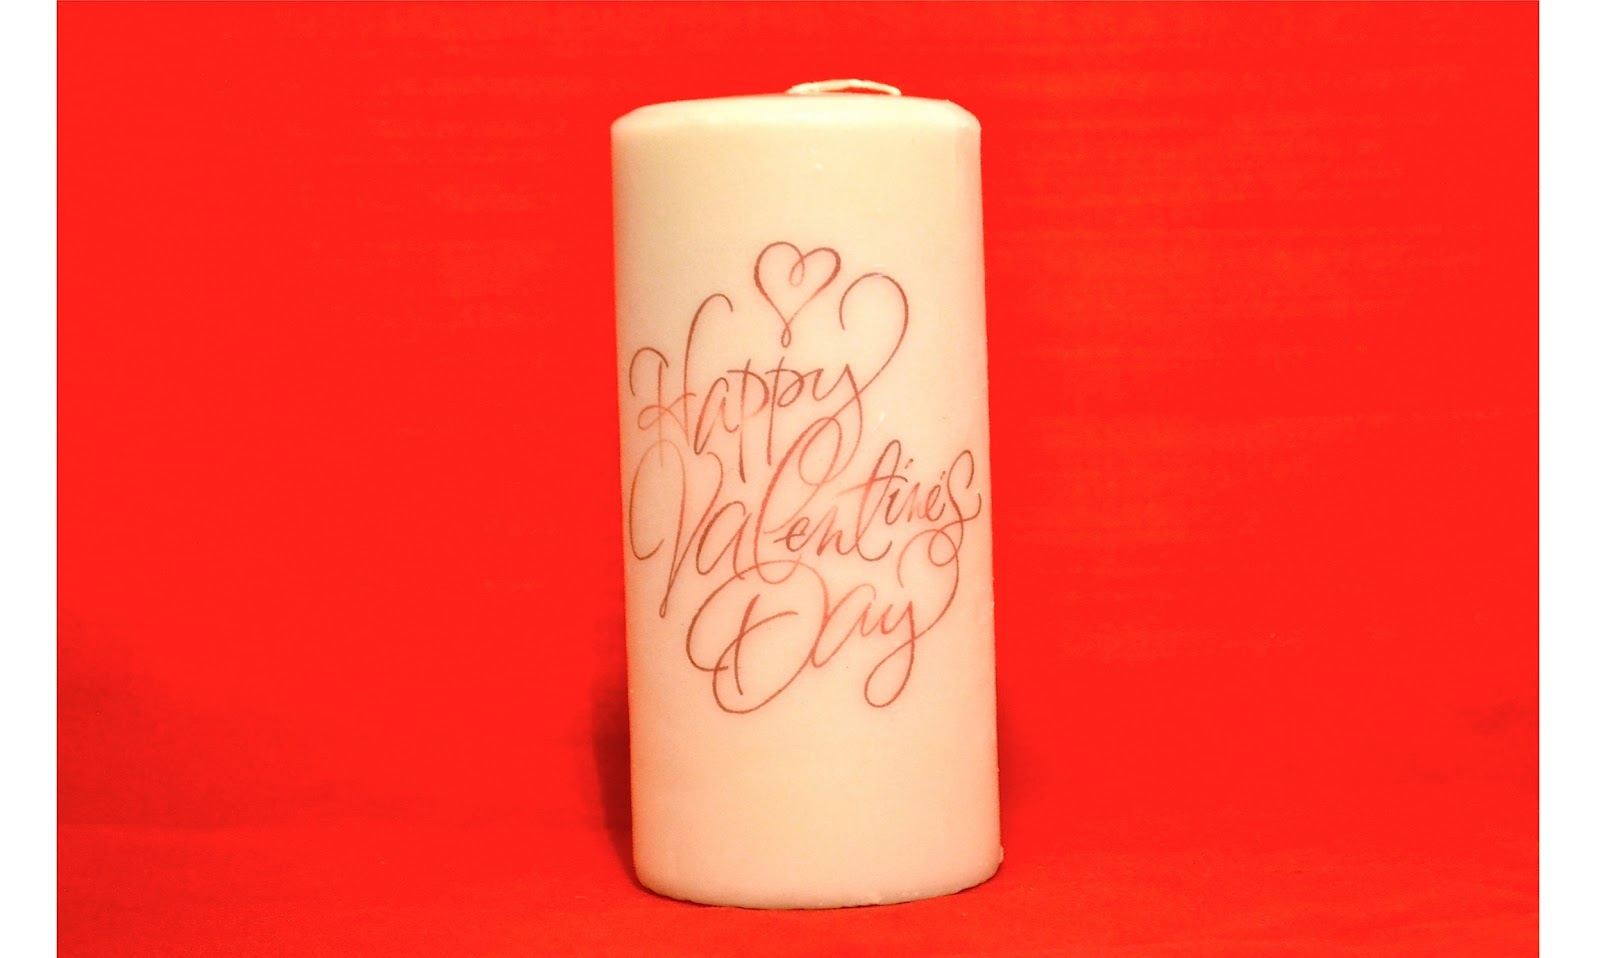 personalized candles for valentines day valentine candles